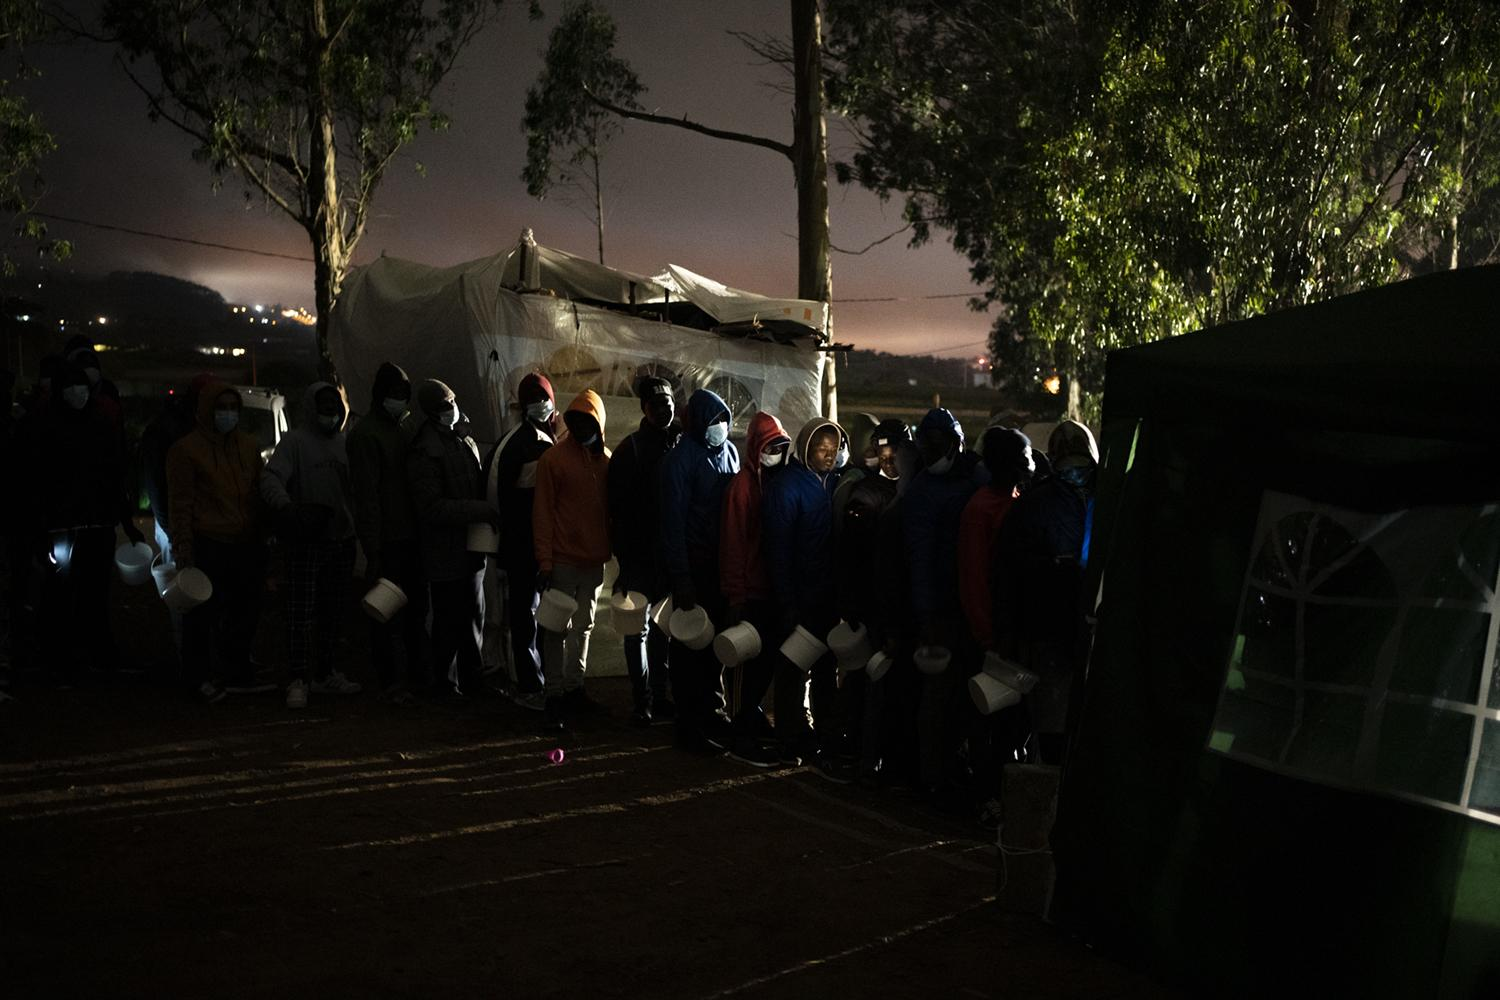 Migrants queue up to receive food in Las Raices camp in San Cristobal de la Laguna, in the Canary Island of Tenerife, Spain, Wednesday, March 17, 2021. AP Photo/Joan Mateu)